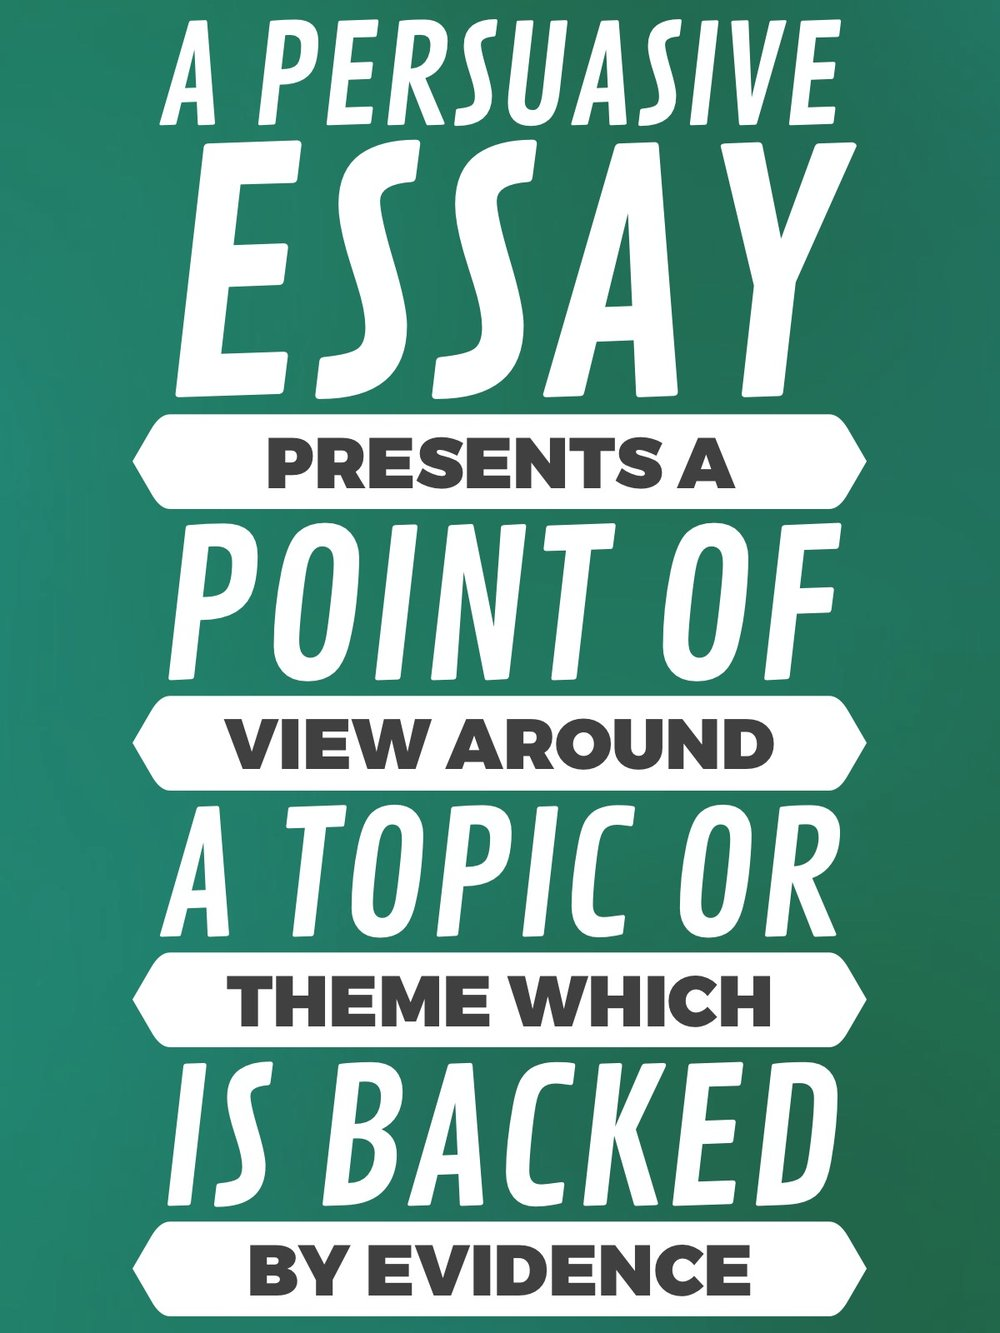 How To Write Perfect Persuasive Essays  Literacy Ideas Whatisapersuasiveessayjpg